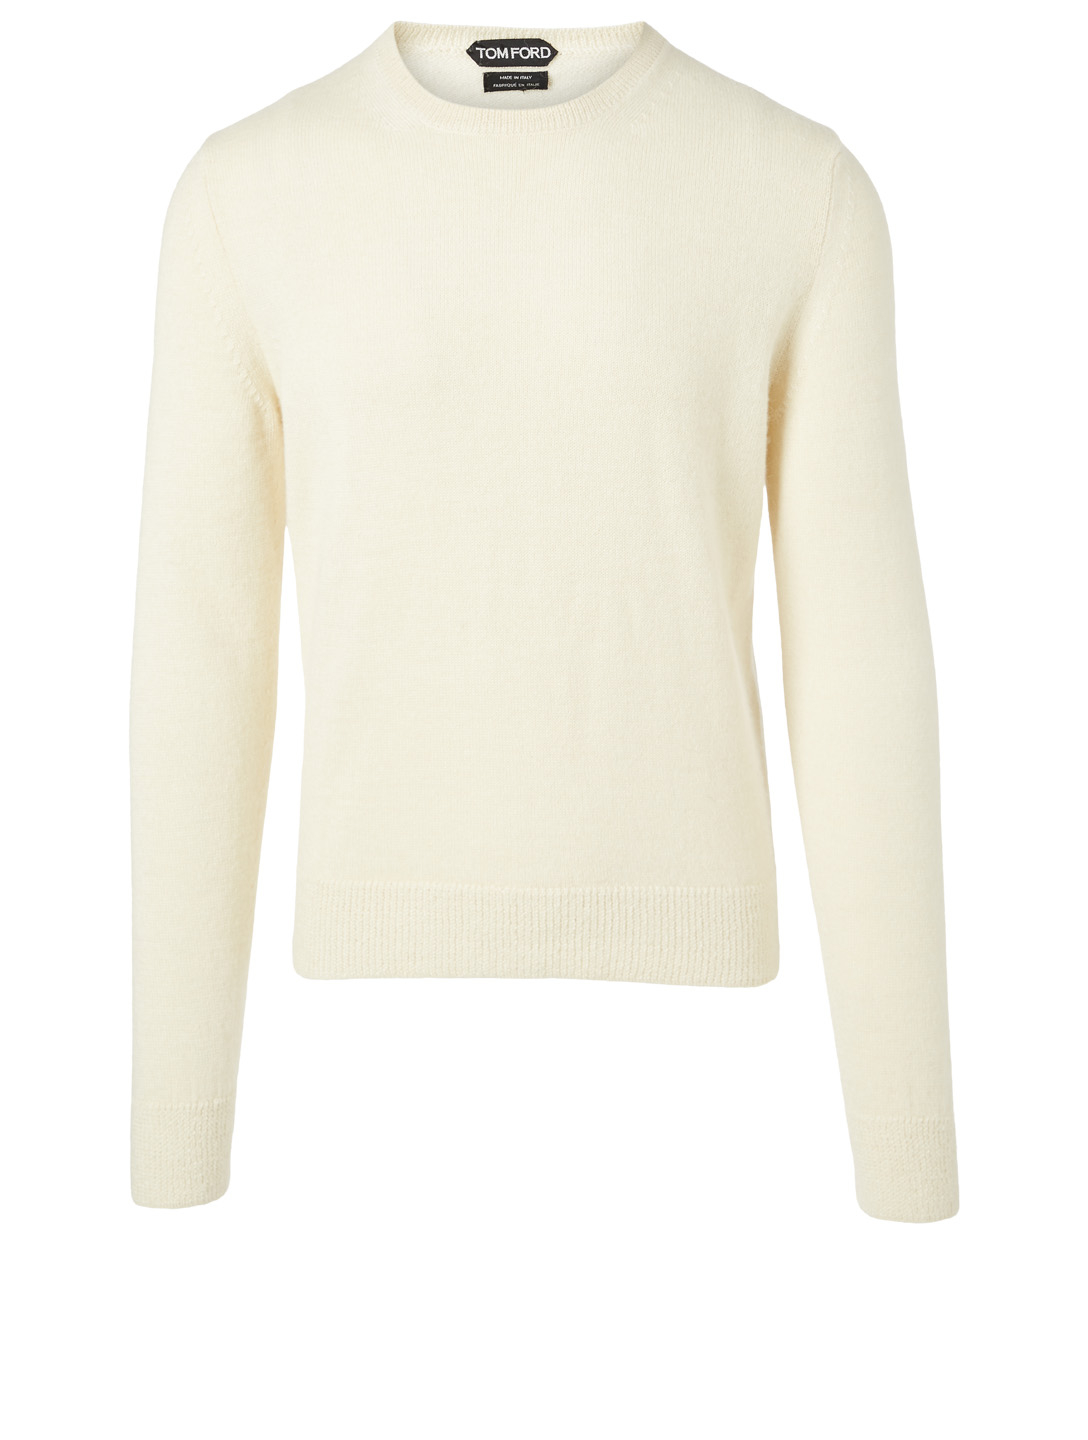 TOM FORD Alpaca And Silk Crewneck Sweater Men's White